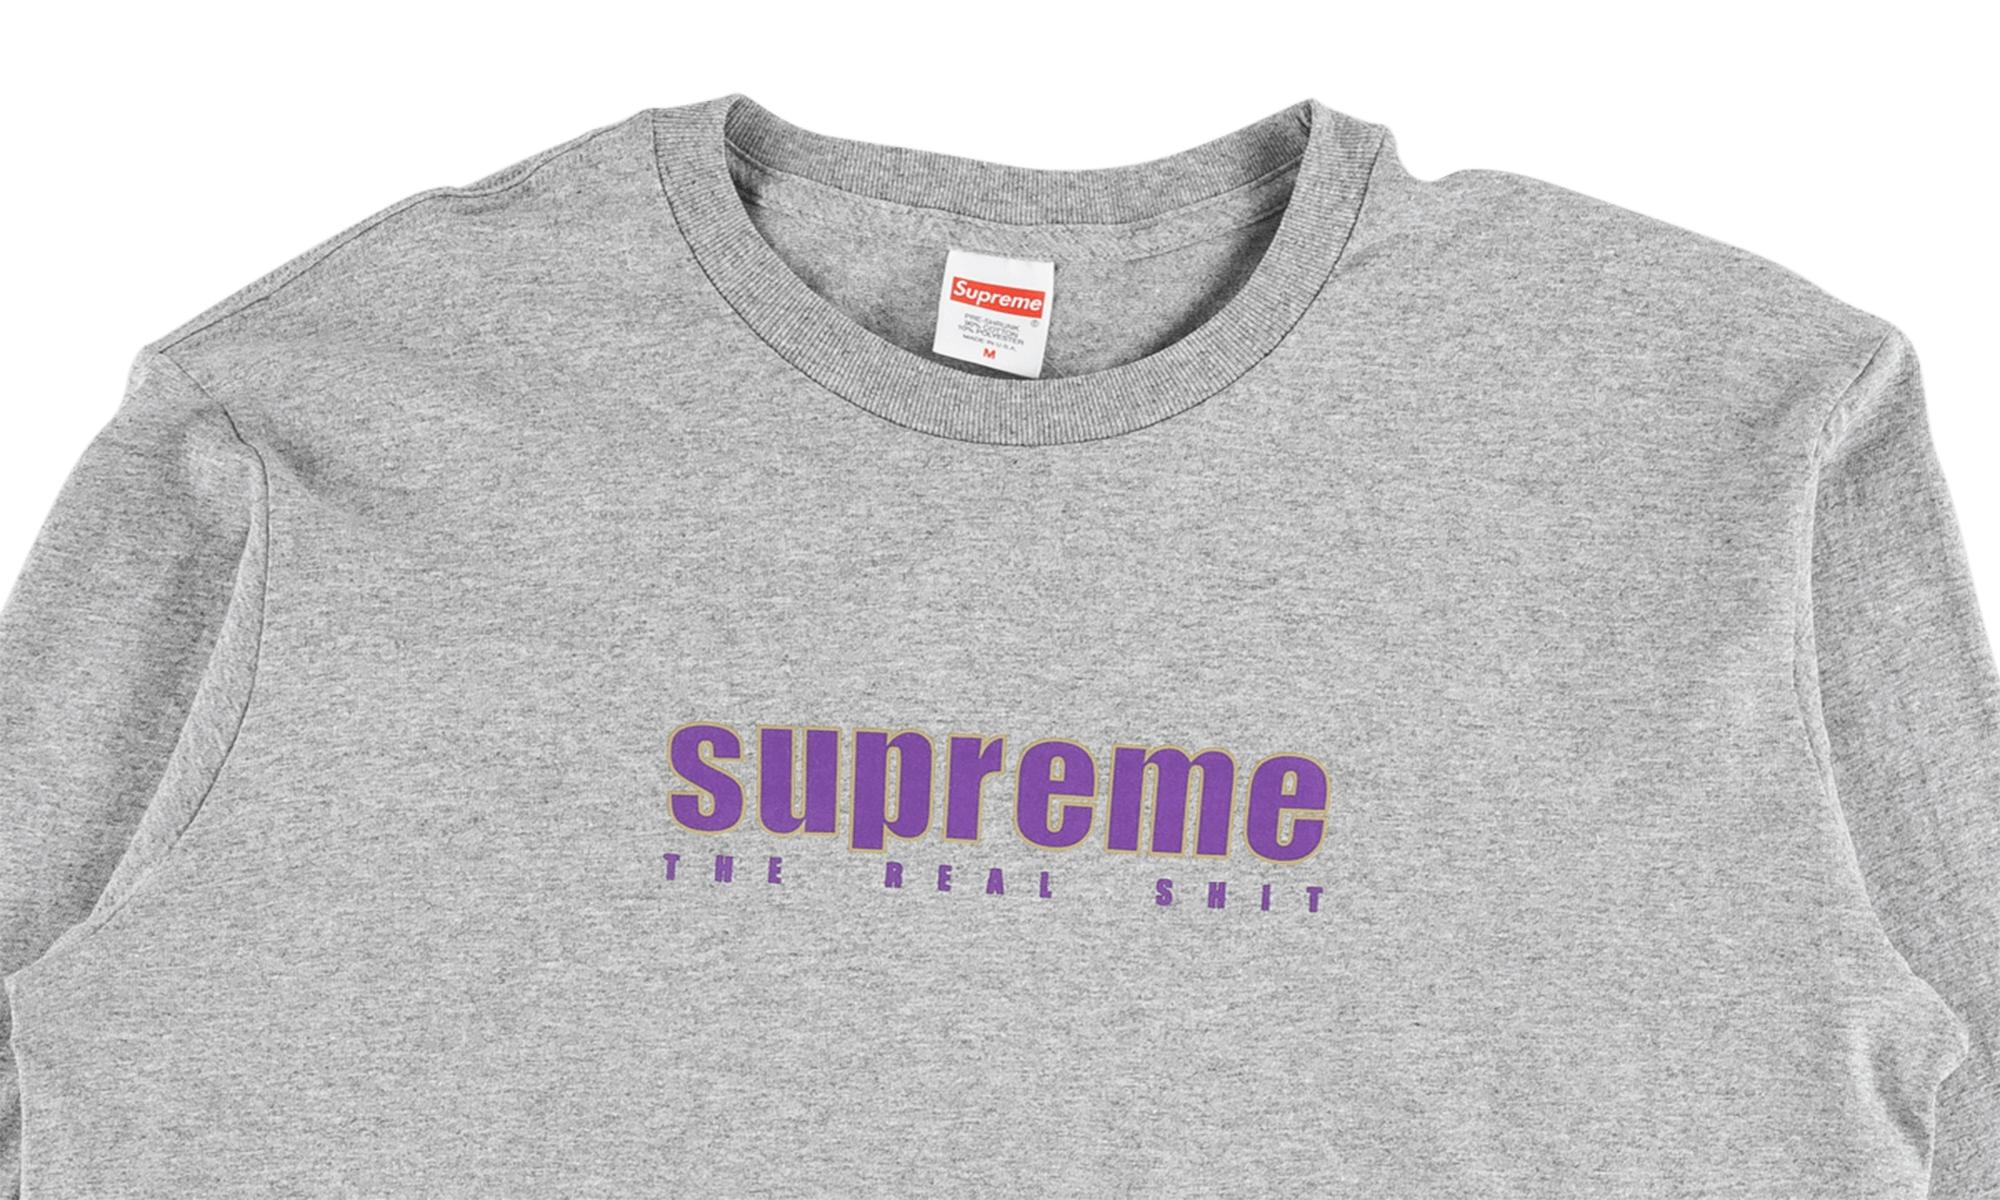 37e0a4678a48 Lyst - Supreme The Real Shit L s Tee in Gray